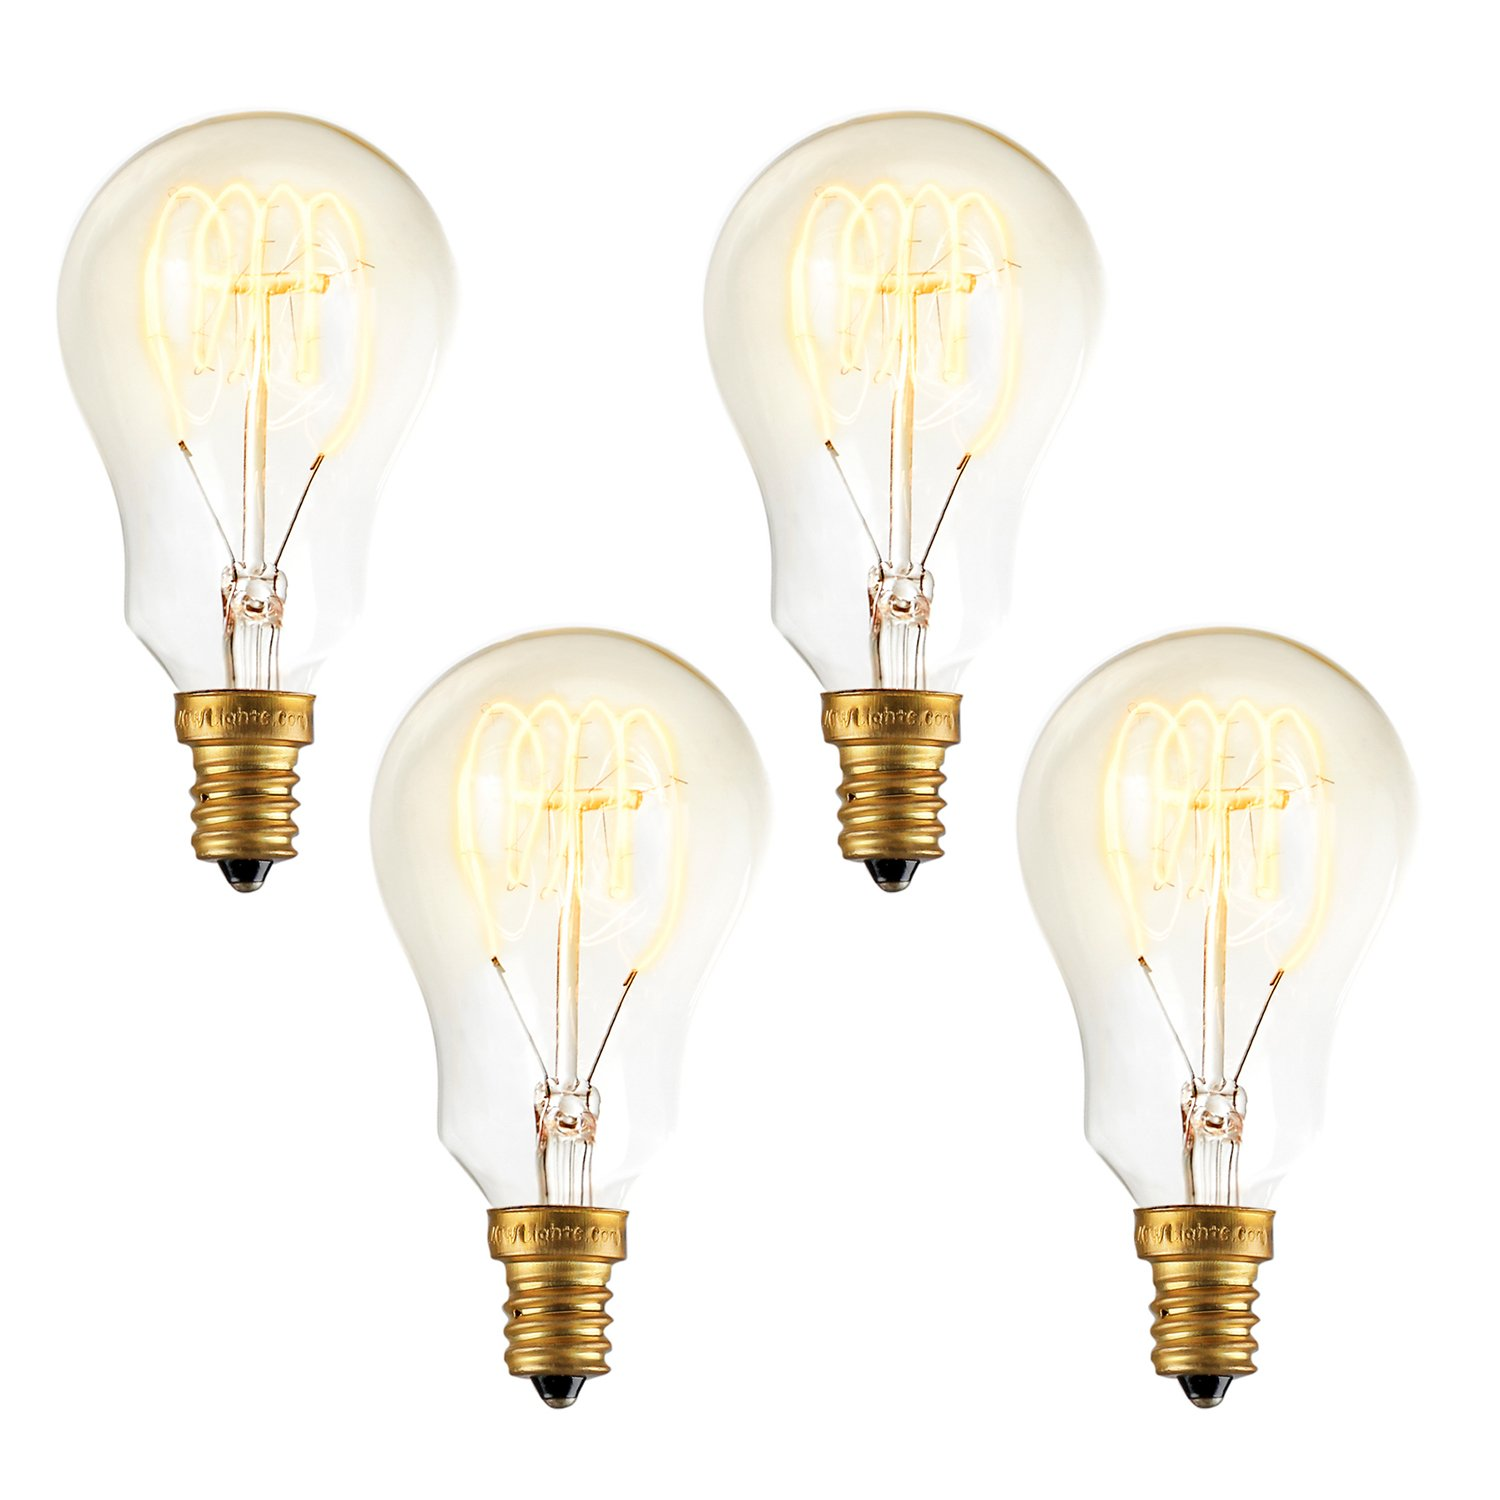 Candelabra Edison A15 Vintage Bulbs, Fully Dimmable, 40W (E12 Socket), Warm White Glow, Spiral Filament, Mini Coney Island Design by Brooklyn Bulb Co - Set of 4 by Brooklyn Bulb Co.